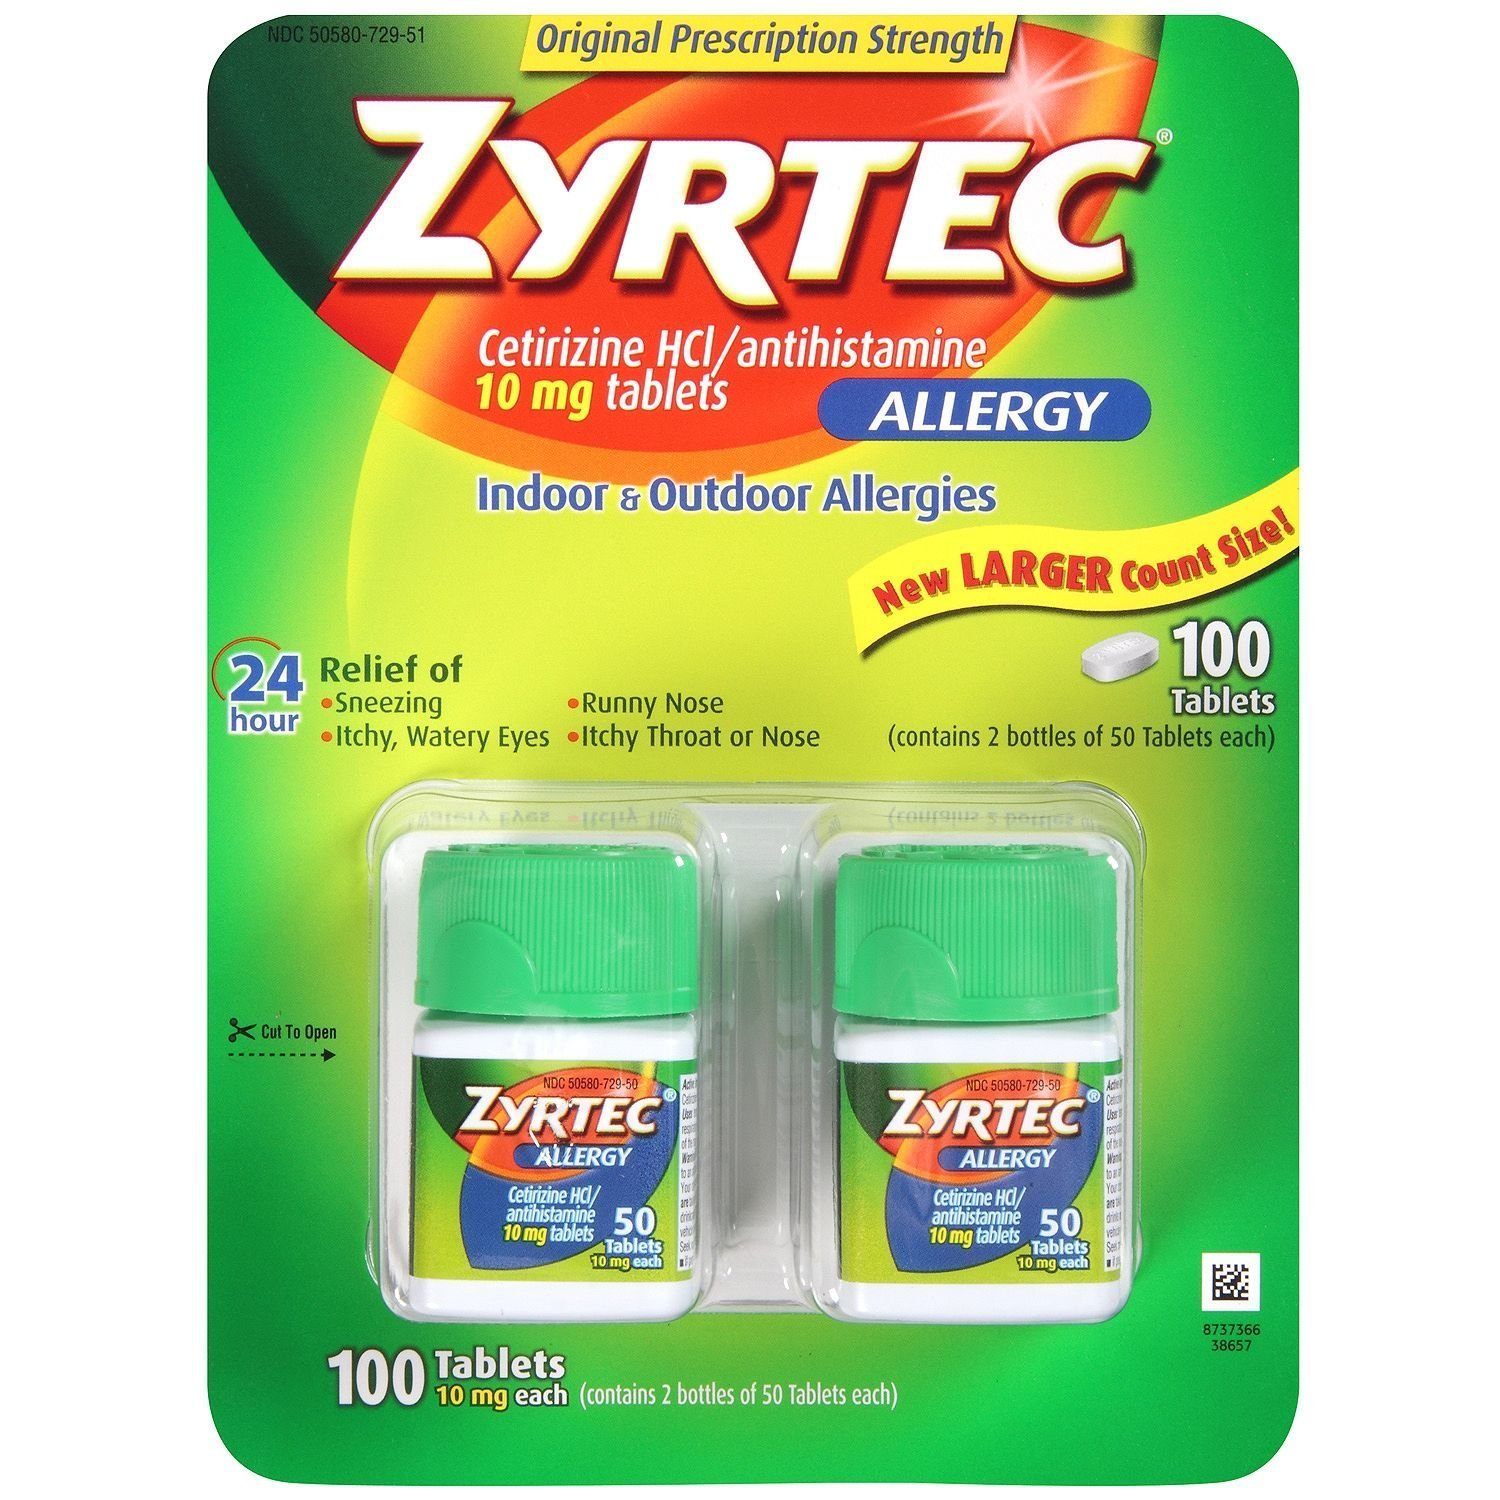 Product of Zyrtec Allergy 10mg Original Prescription Strength Tablets, 100 ct. - Allergy [Bulk Savings] by Zyrtec